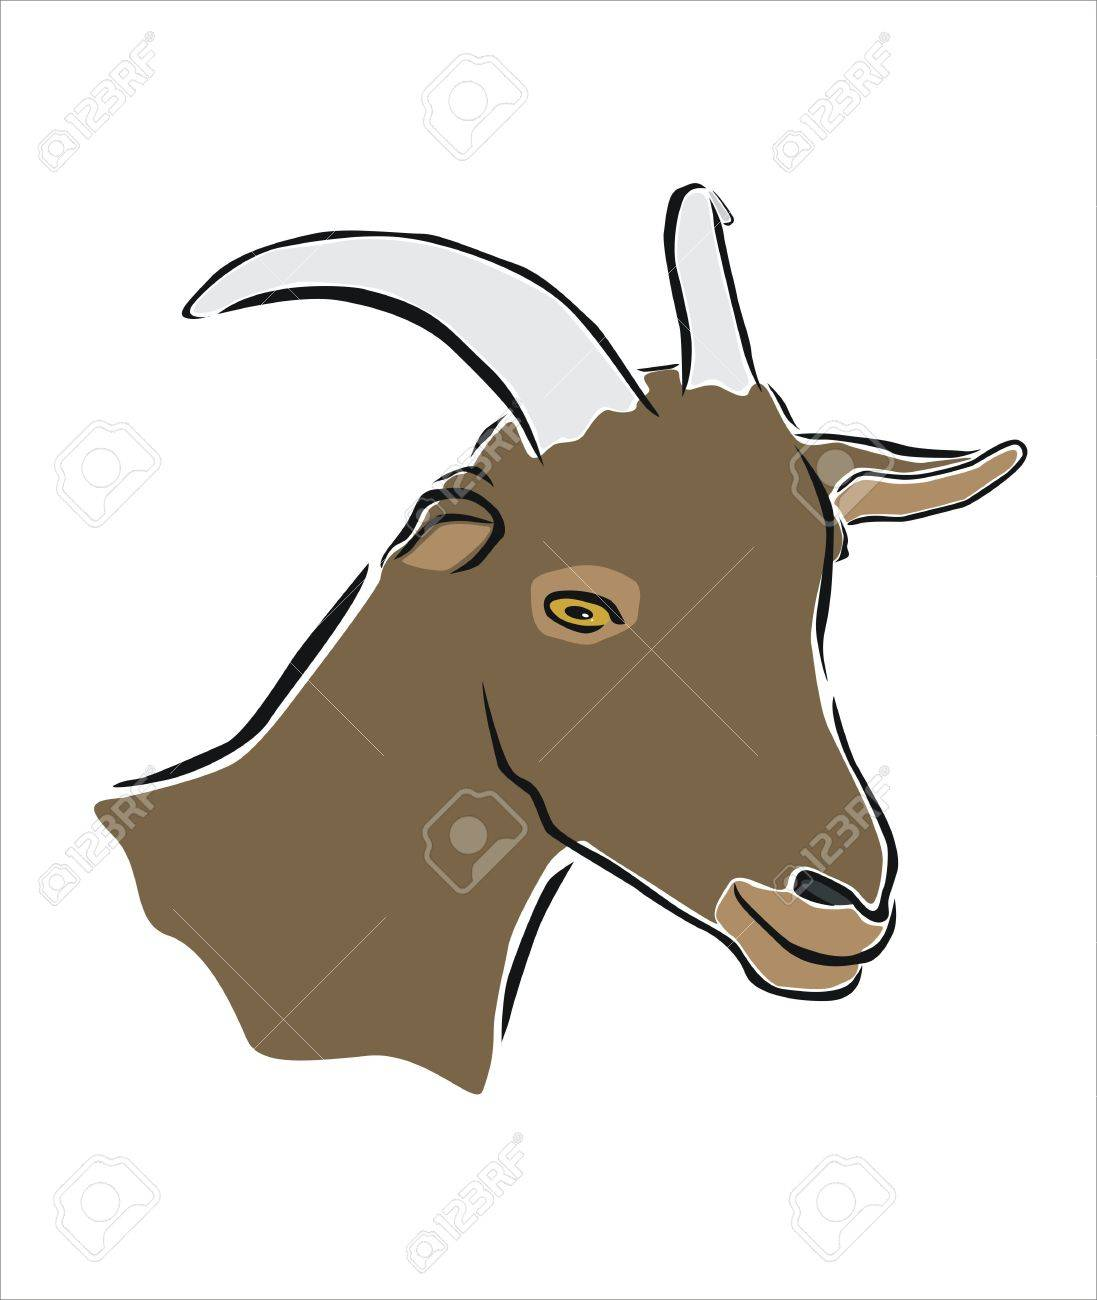 1097x1300 Drawing Of The Head Of A Goat Royalty Free Cliparts, Vectors,